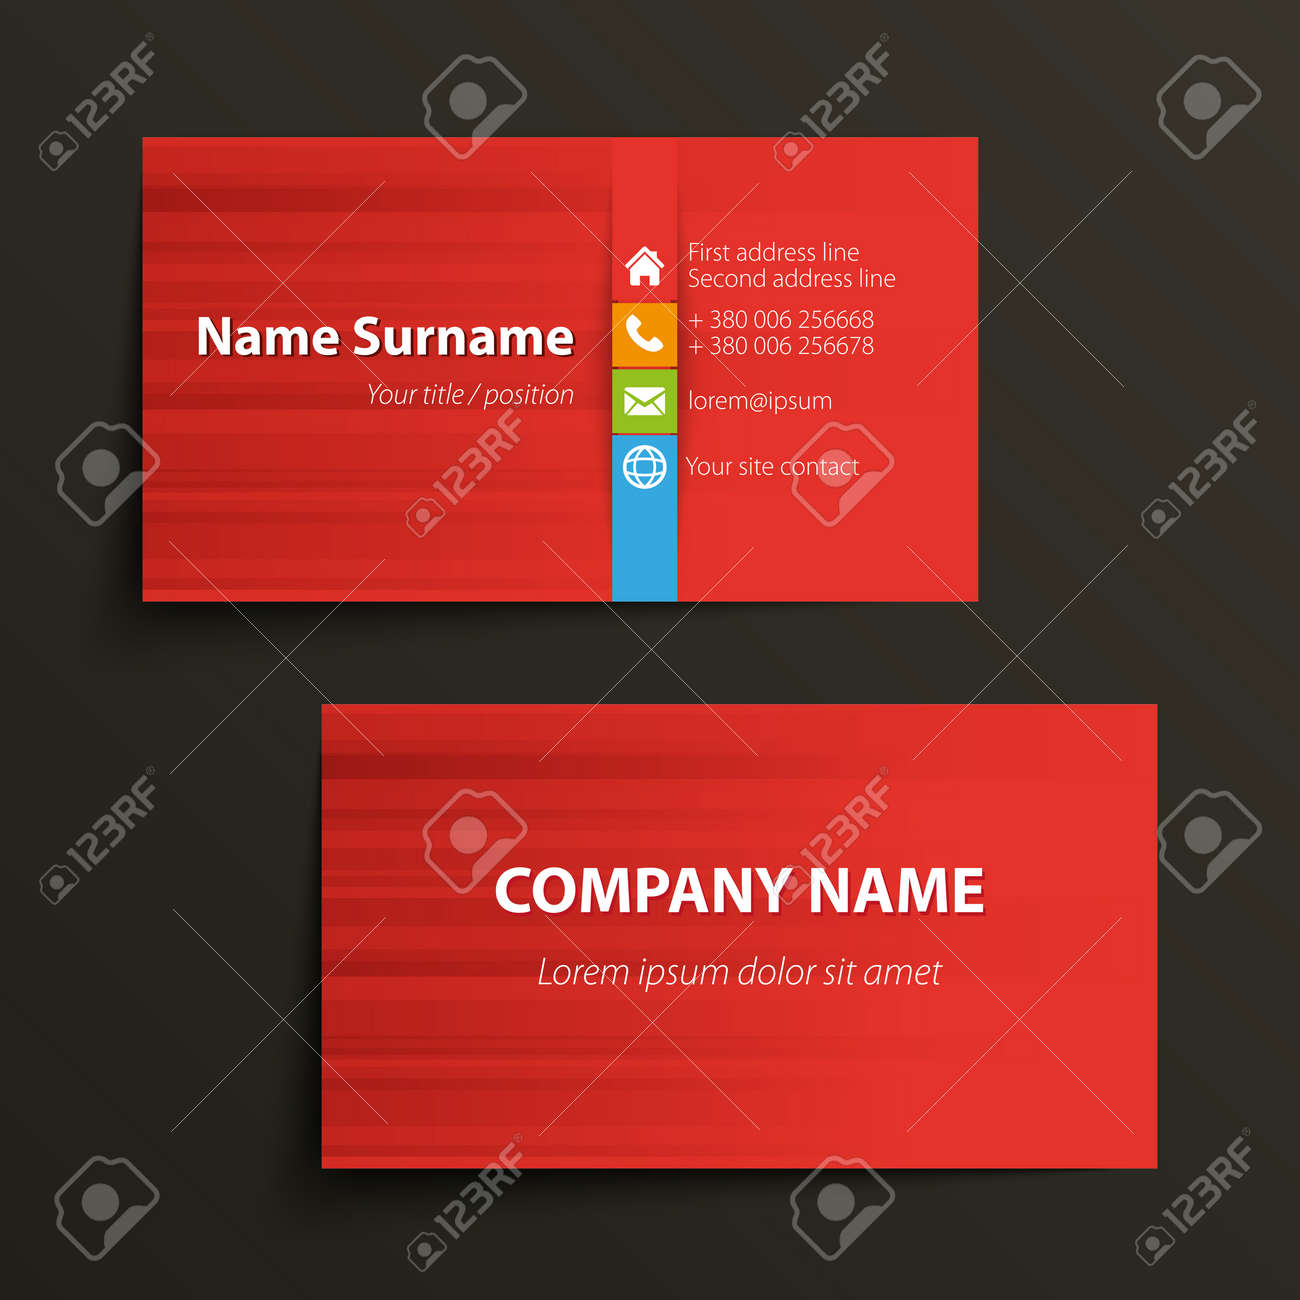 Modern Simple Business Card Template Vector Format Stock